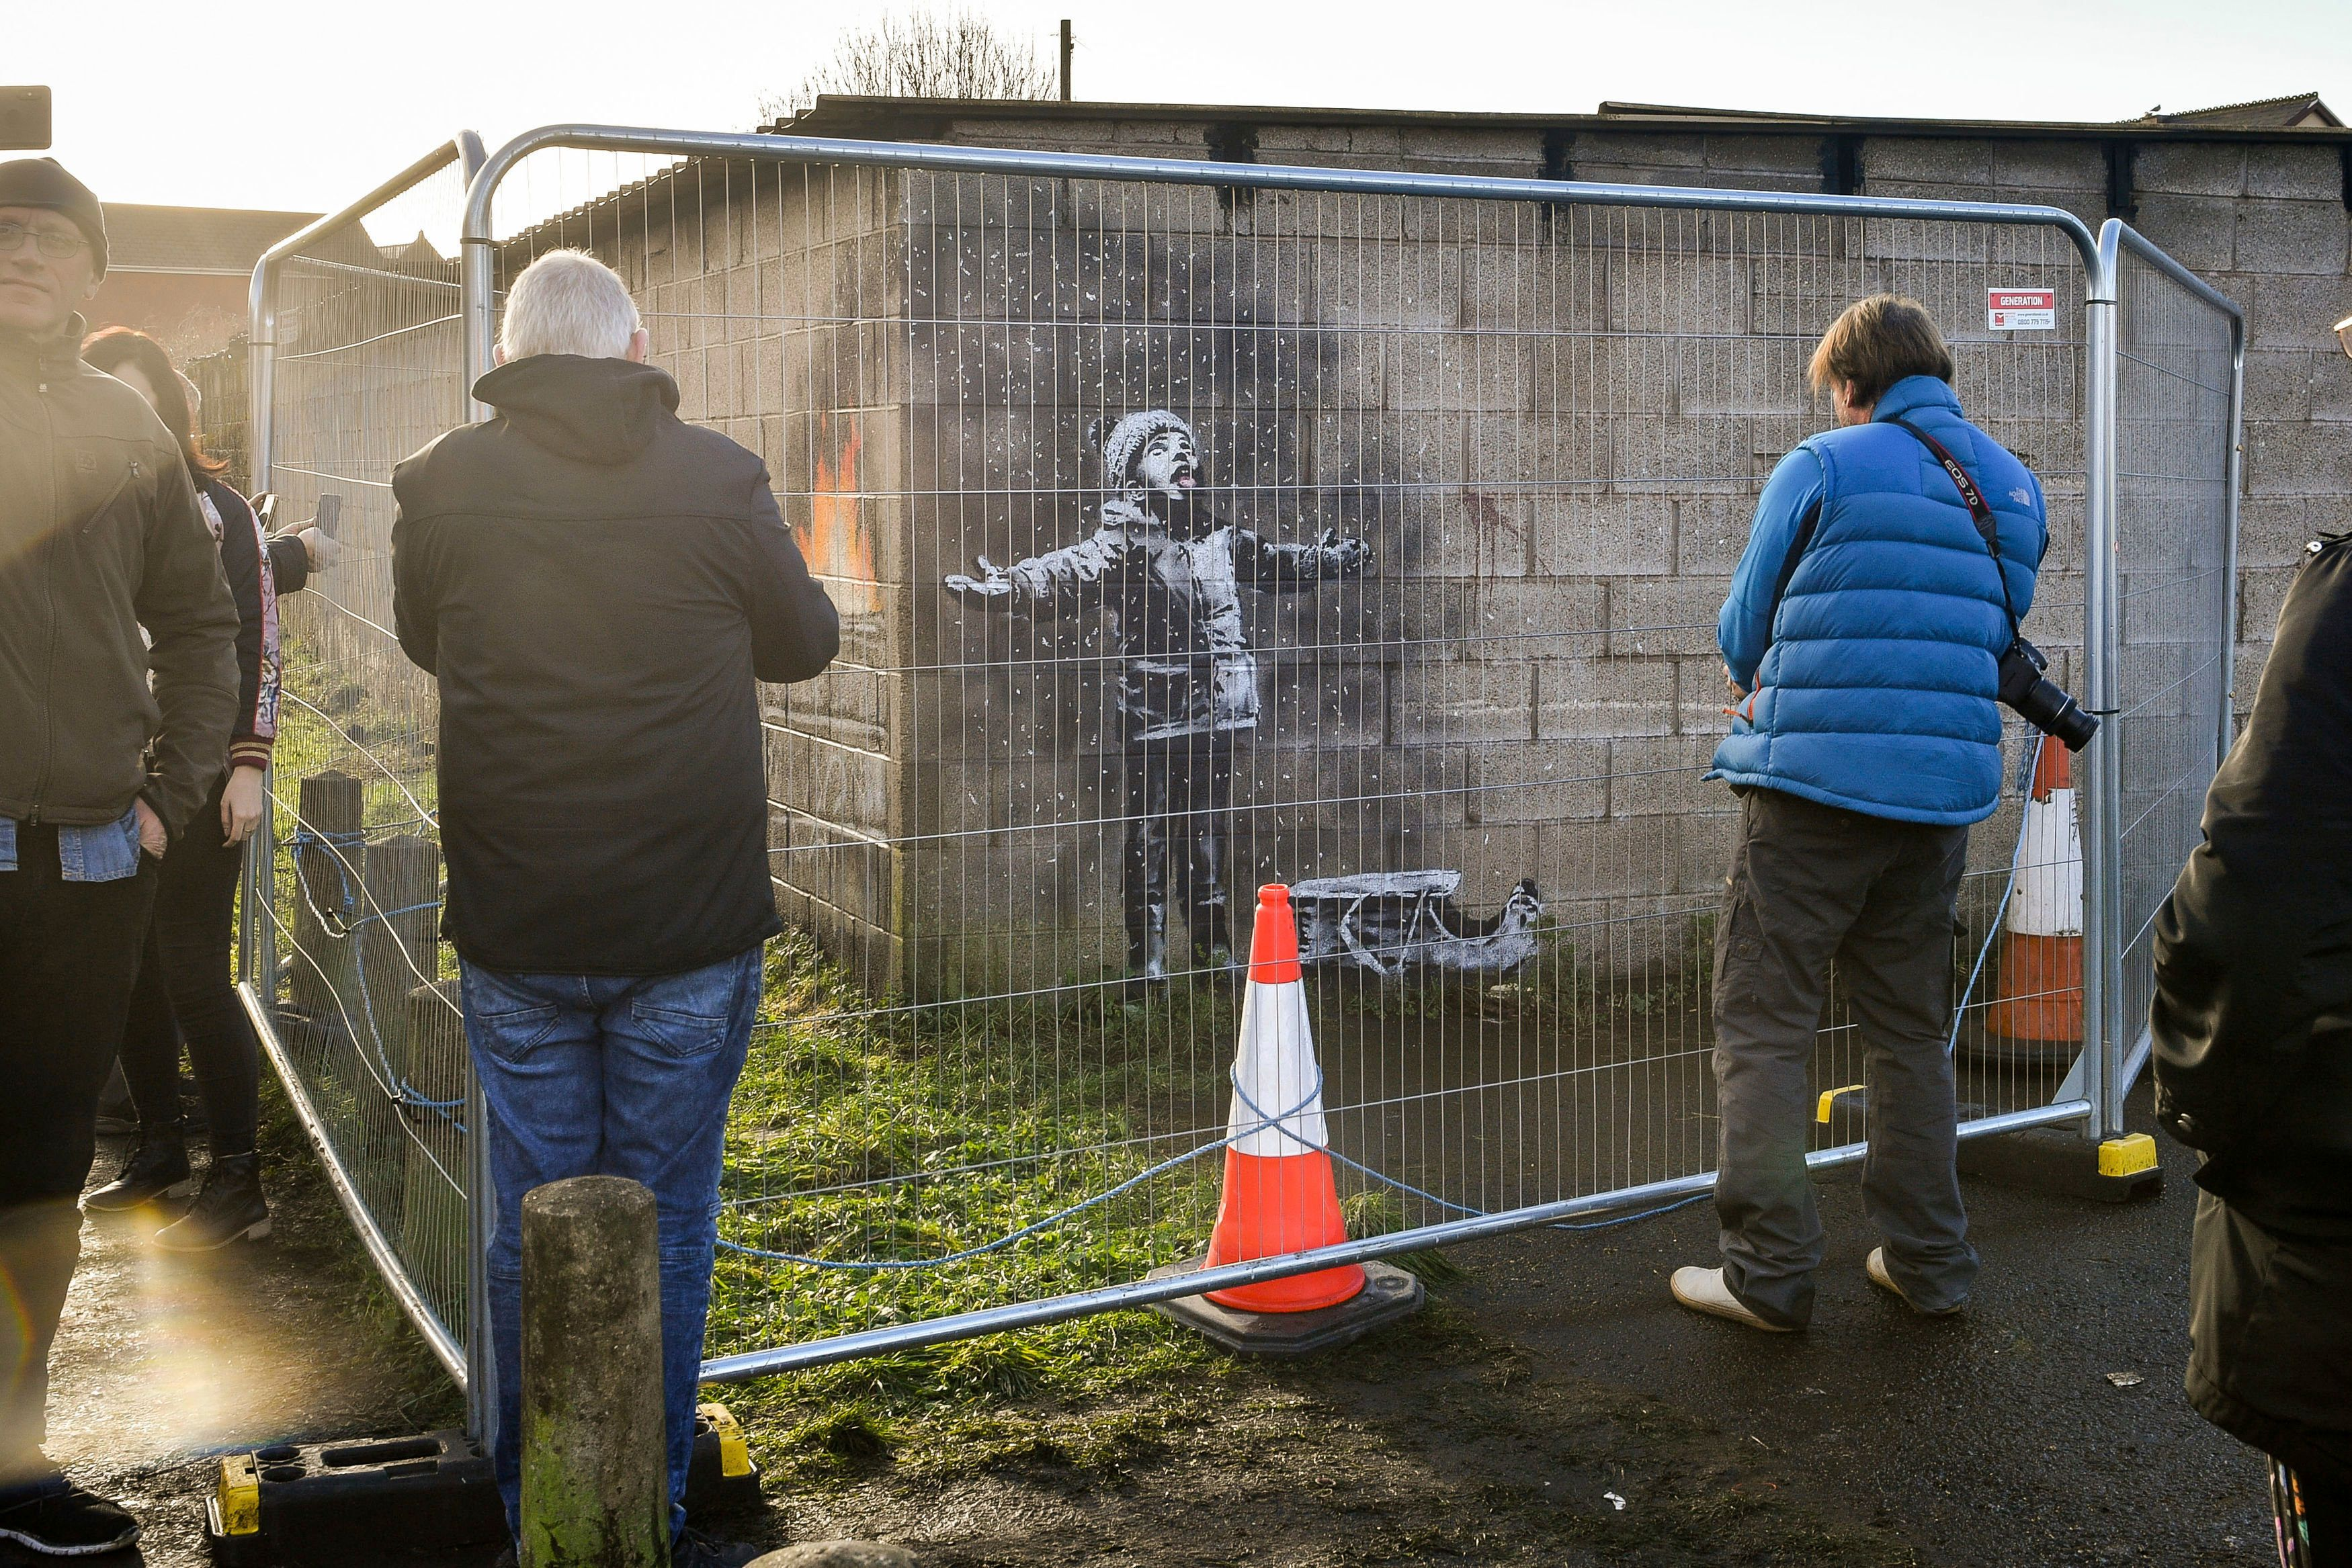 The local council cordoned off the mural to protect it.